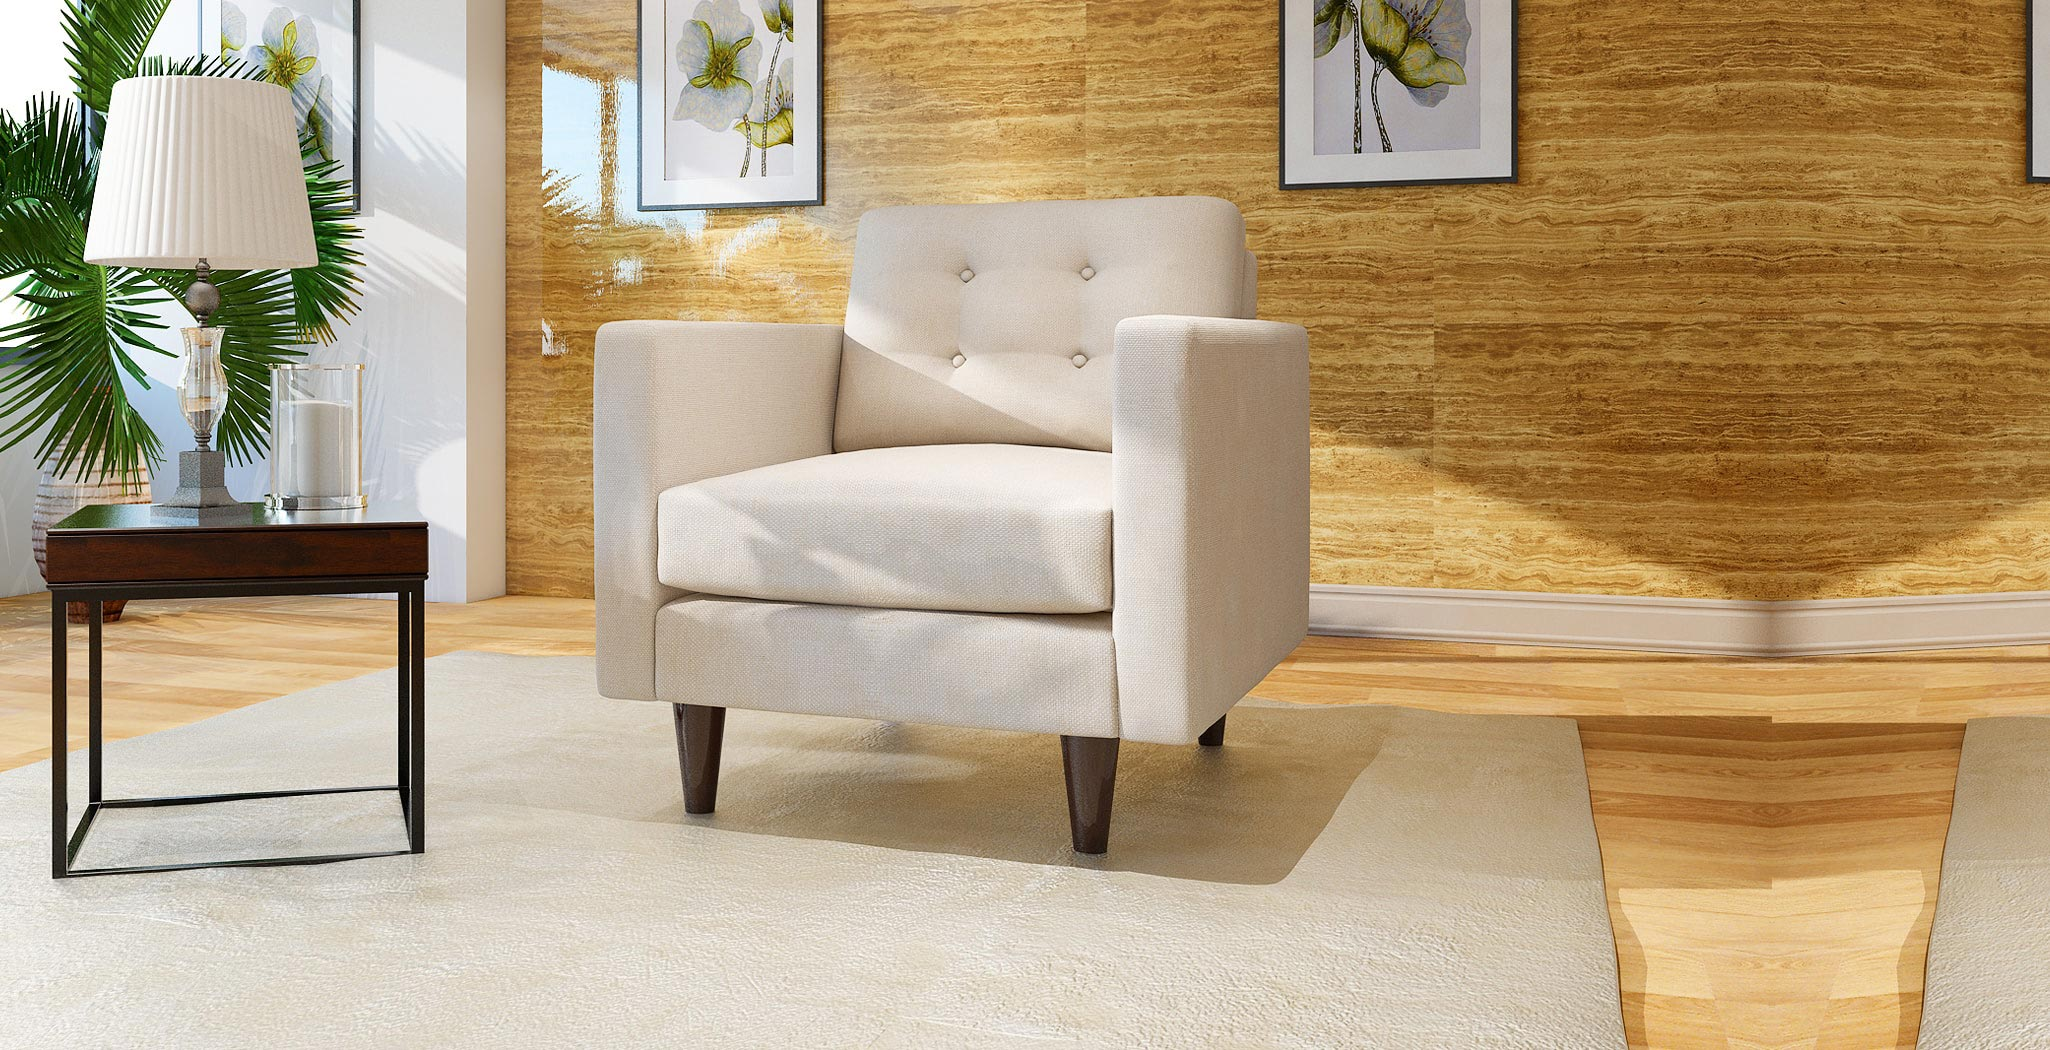 turin chair premium furiture DreamSofa